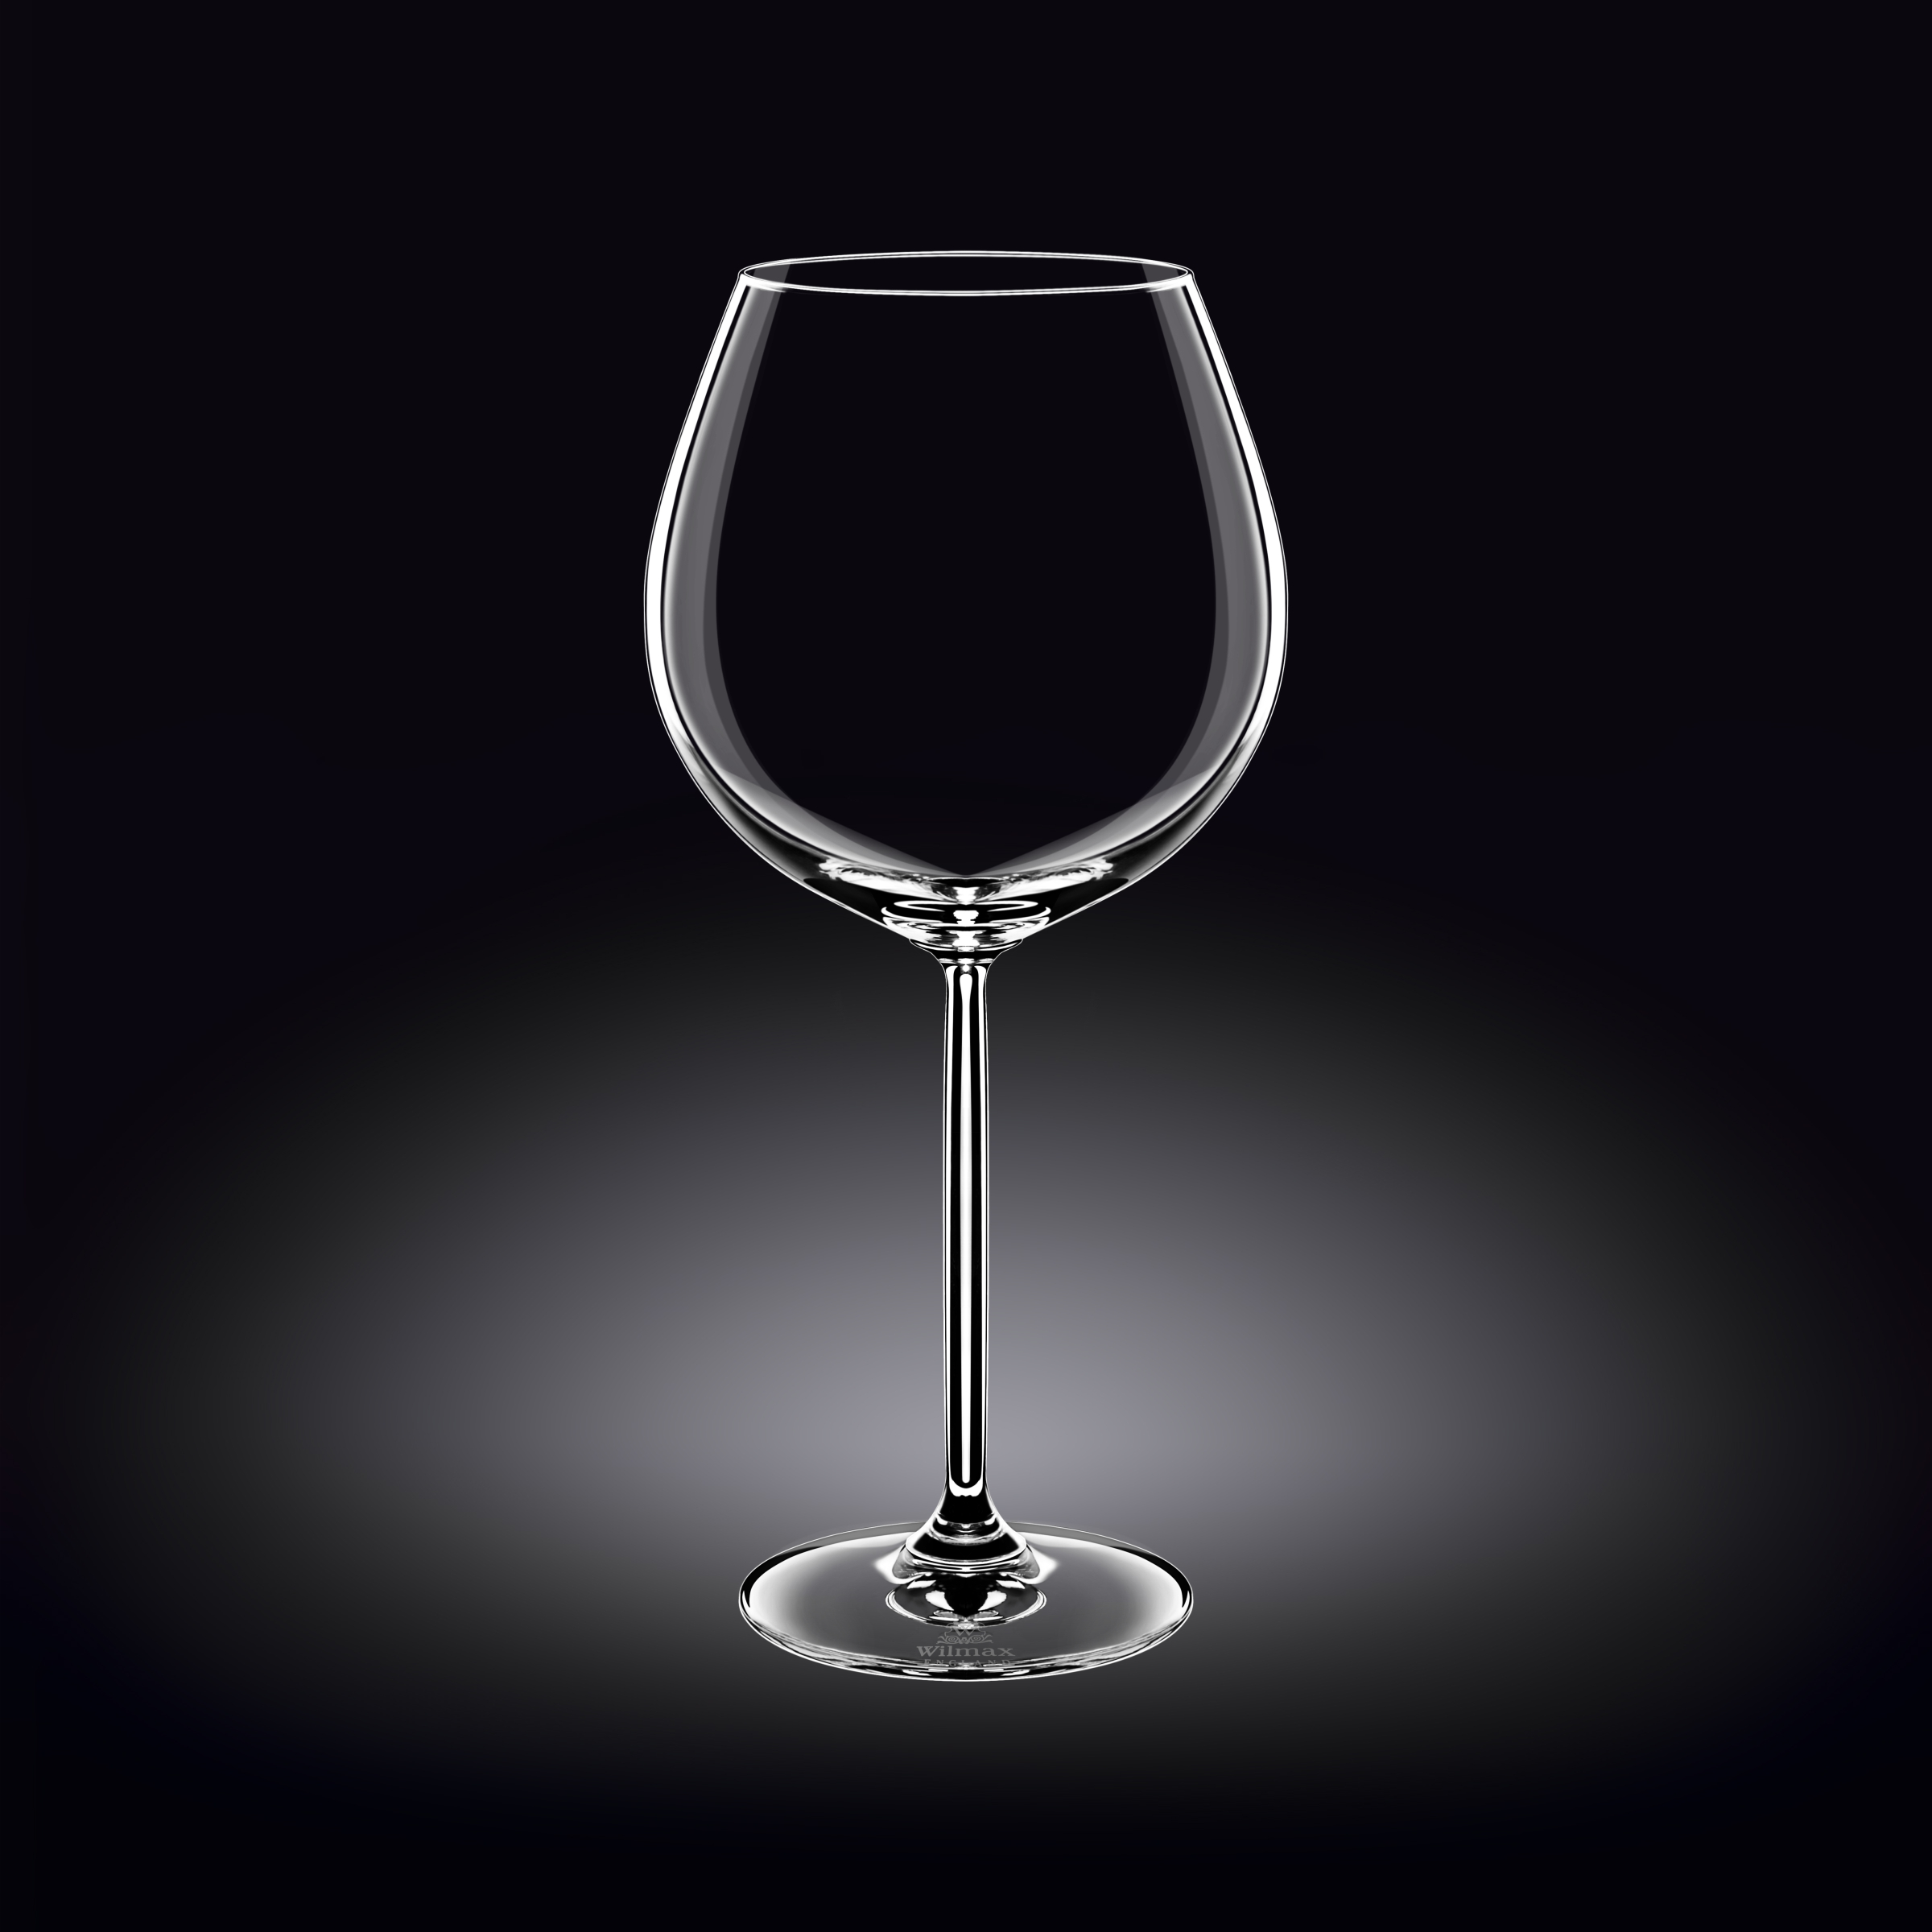 Wine Glass 29 oz | 850 ml